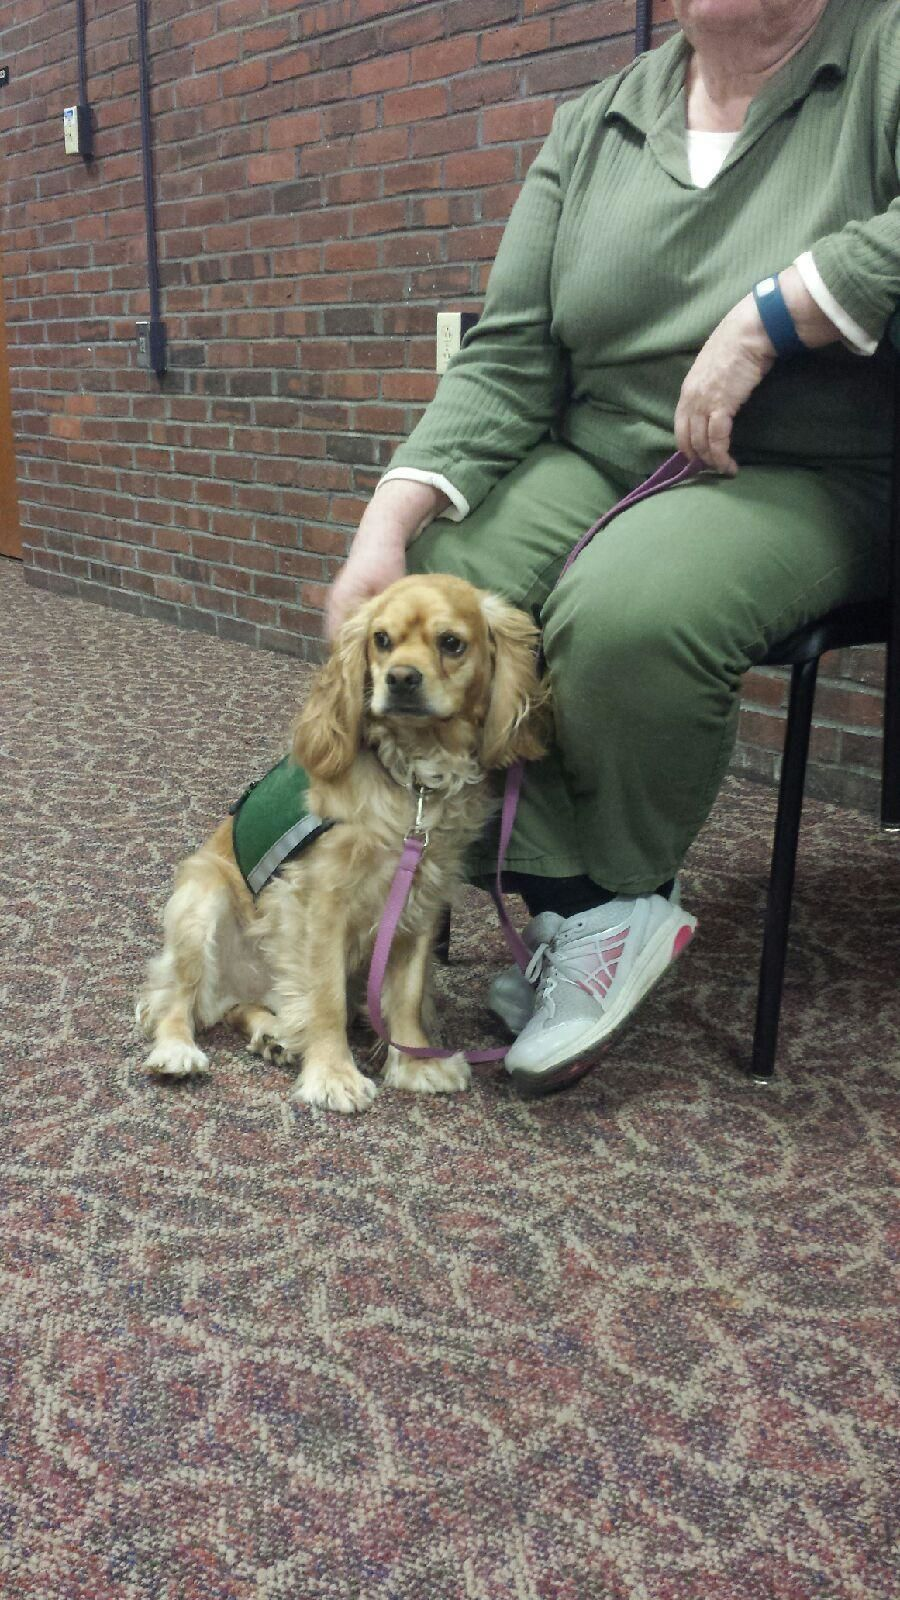 Therapy dog training in nh me vt 603 369 4738 college for pets therapy dog training xflitez Images